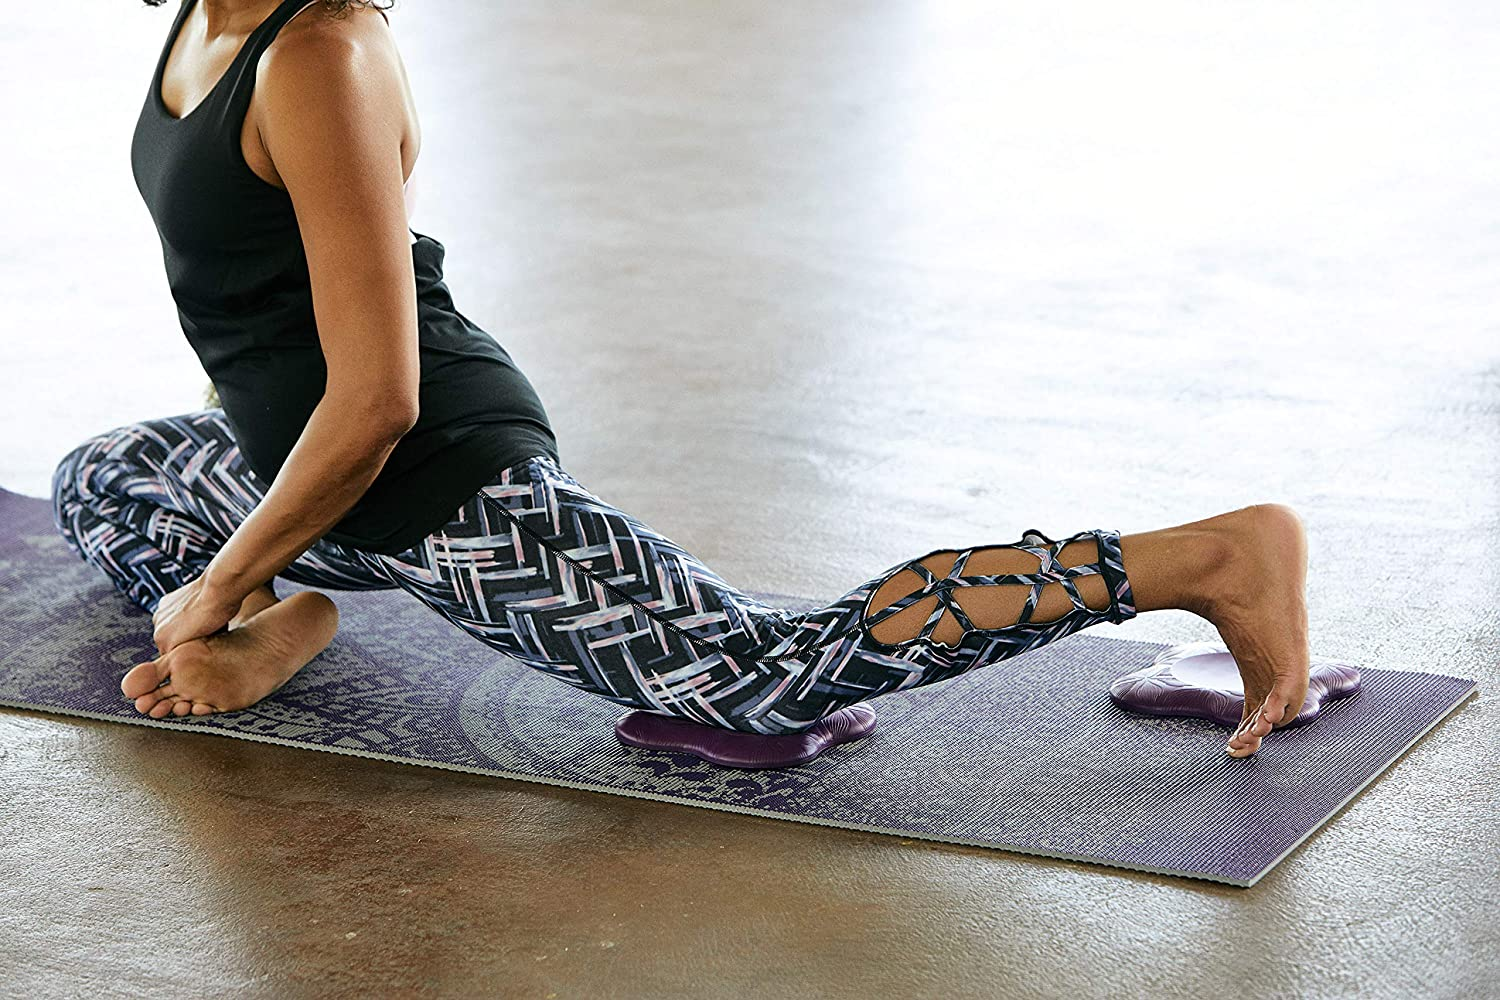 Amazon.com: Gaiam - Rodilleras de yoga (2 unidades): Sports ...